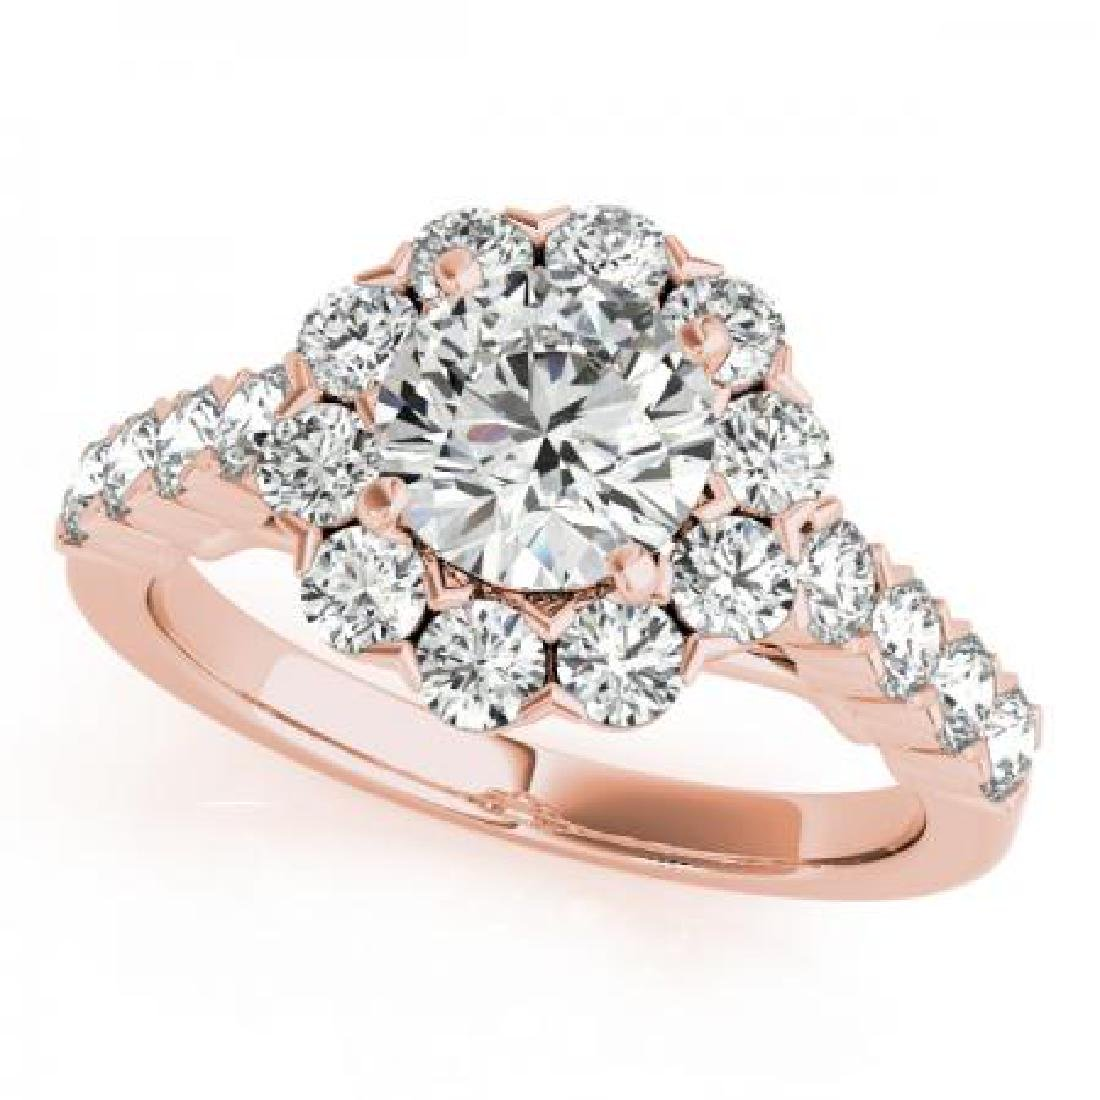 CERTIFIED 14KT ROSE GOLD 1.12 CT G-H/VS-SI1 DIAMOND HAL